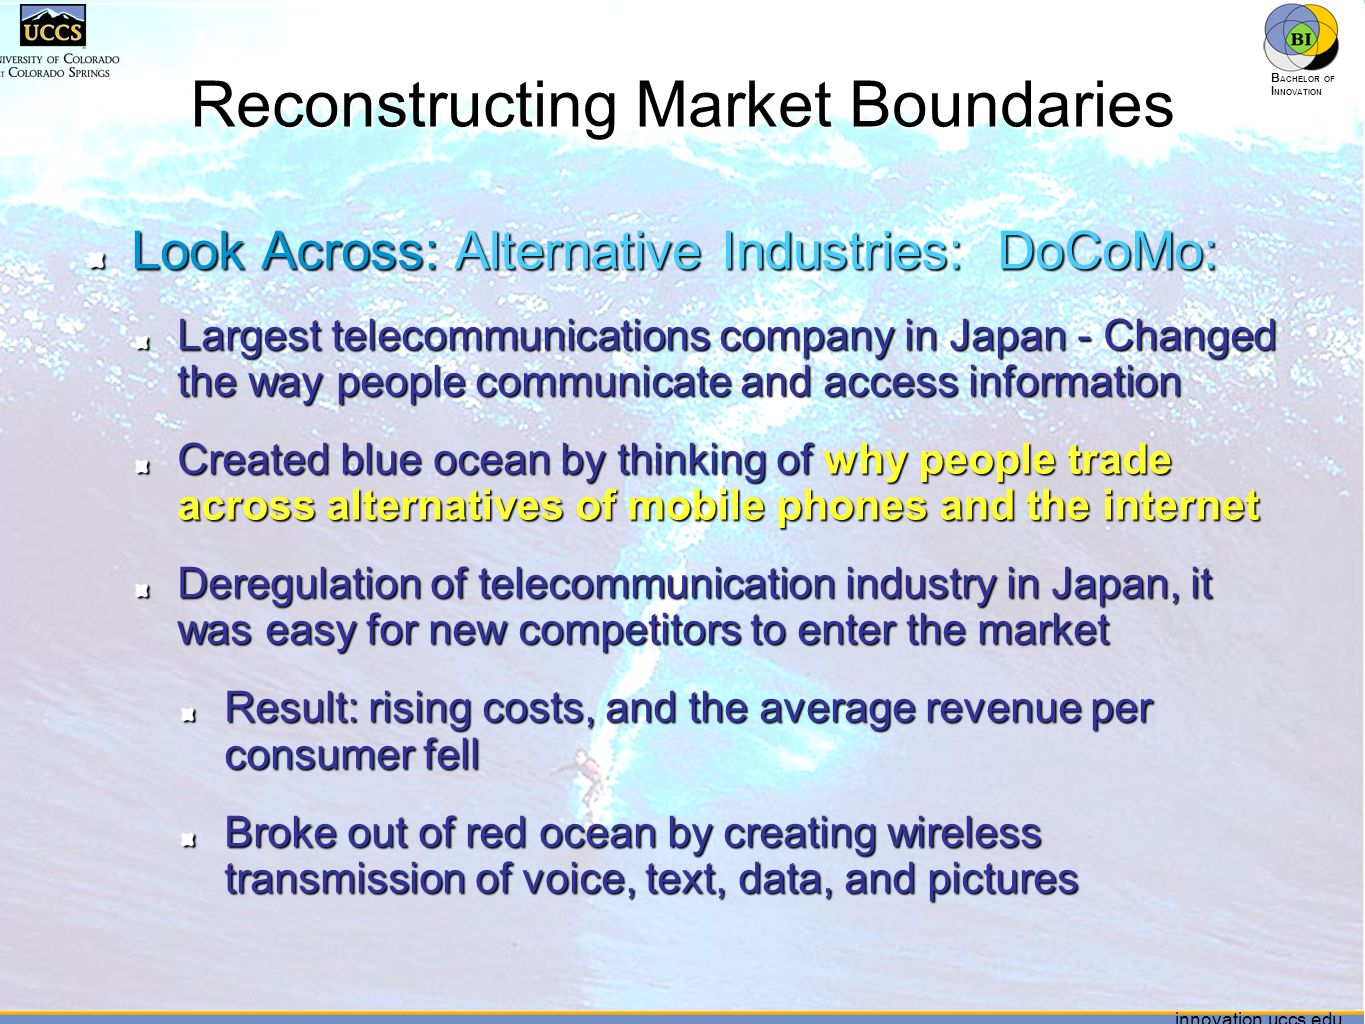 innovation.uccs.edu B ACHELOR OF I NNOVATION ™ innovation.uccs.edu B ACHELOR OF I NNOVATION ™ Reconstructing Market Boundaries Look Across: Alternative Industries: DoCoMo: Largest telecommunications company in Japan - Changed the way people communicate and access information Created blue ocean by thinking of why people trade across alternatives of mobile phones and the internet Deregulation of telecommunication industry in Japan, it was easy for new competitors to enter the market Result: rising costs, and the average revenue per consumer fell Broke out of red ocean by creating wireless transmission of voice, text, data, and pictures 63